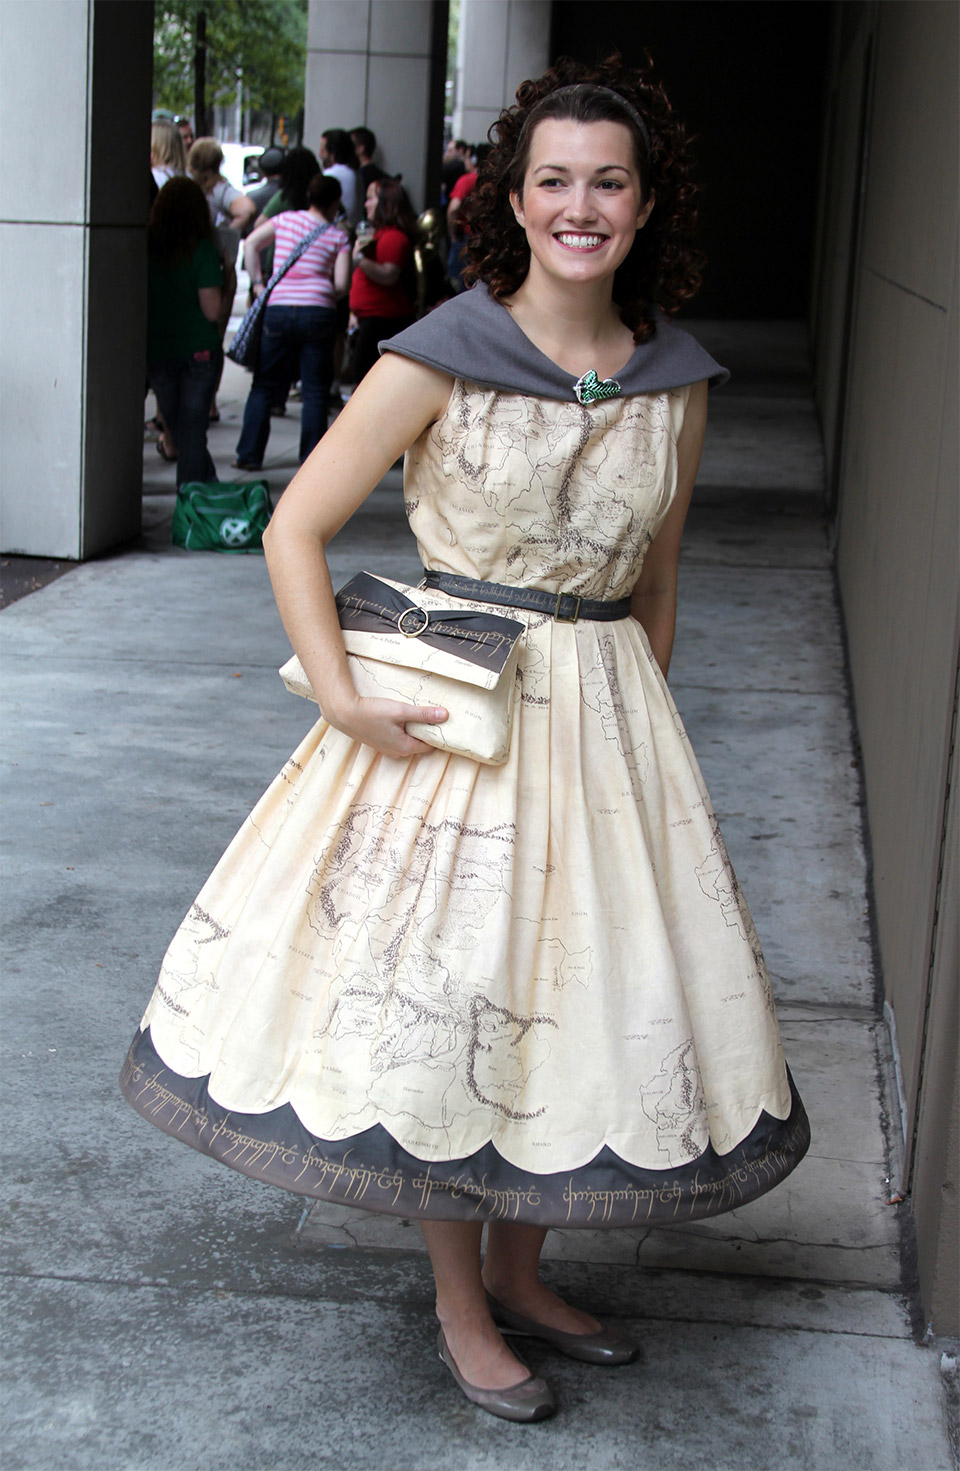 The Hobbit Cosplay: Map of Middle Earth Dress